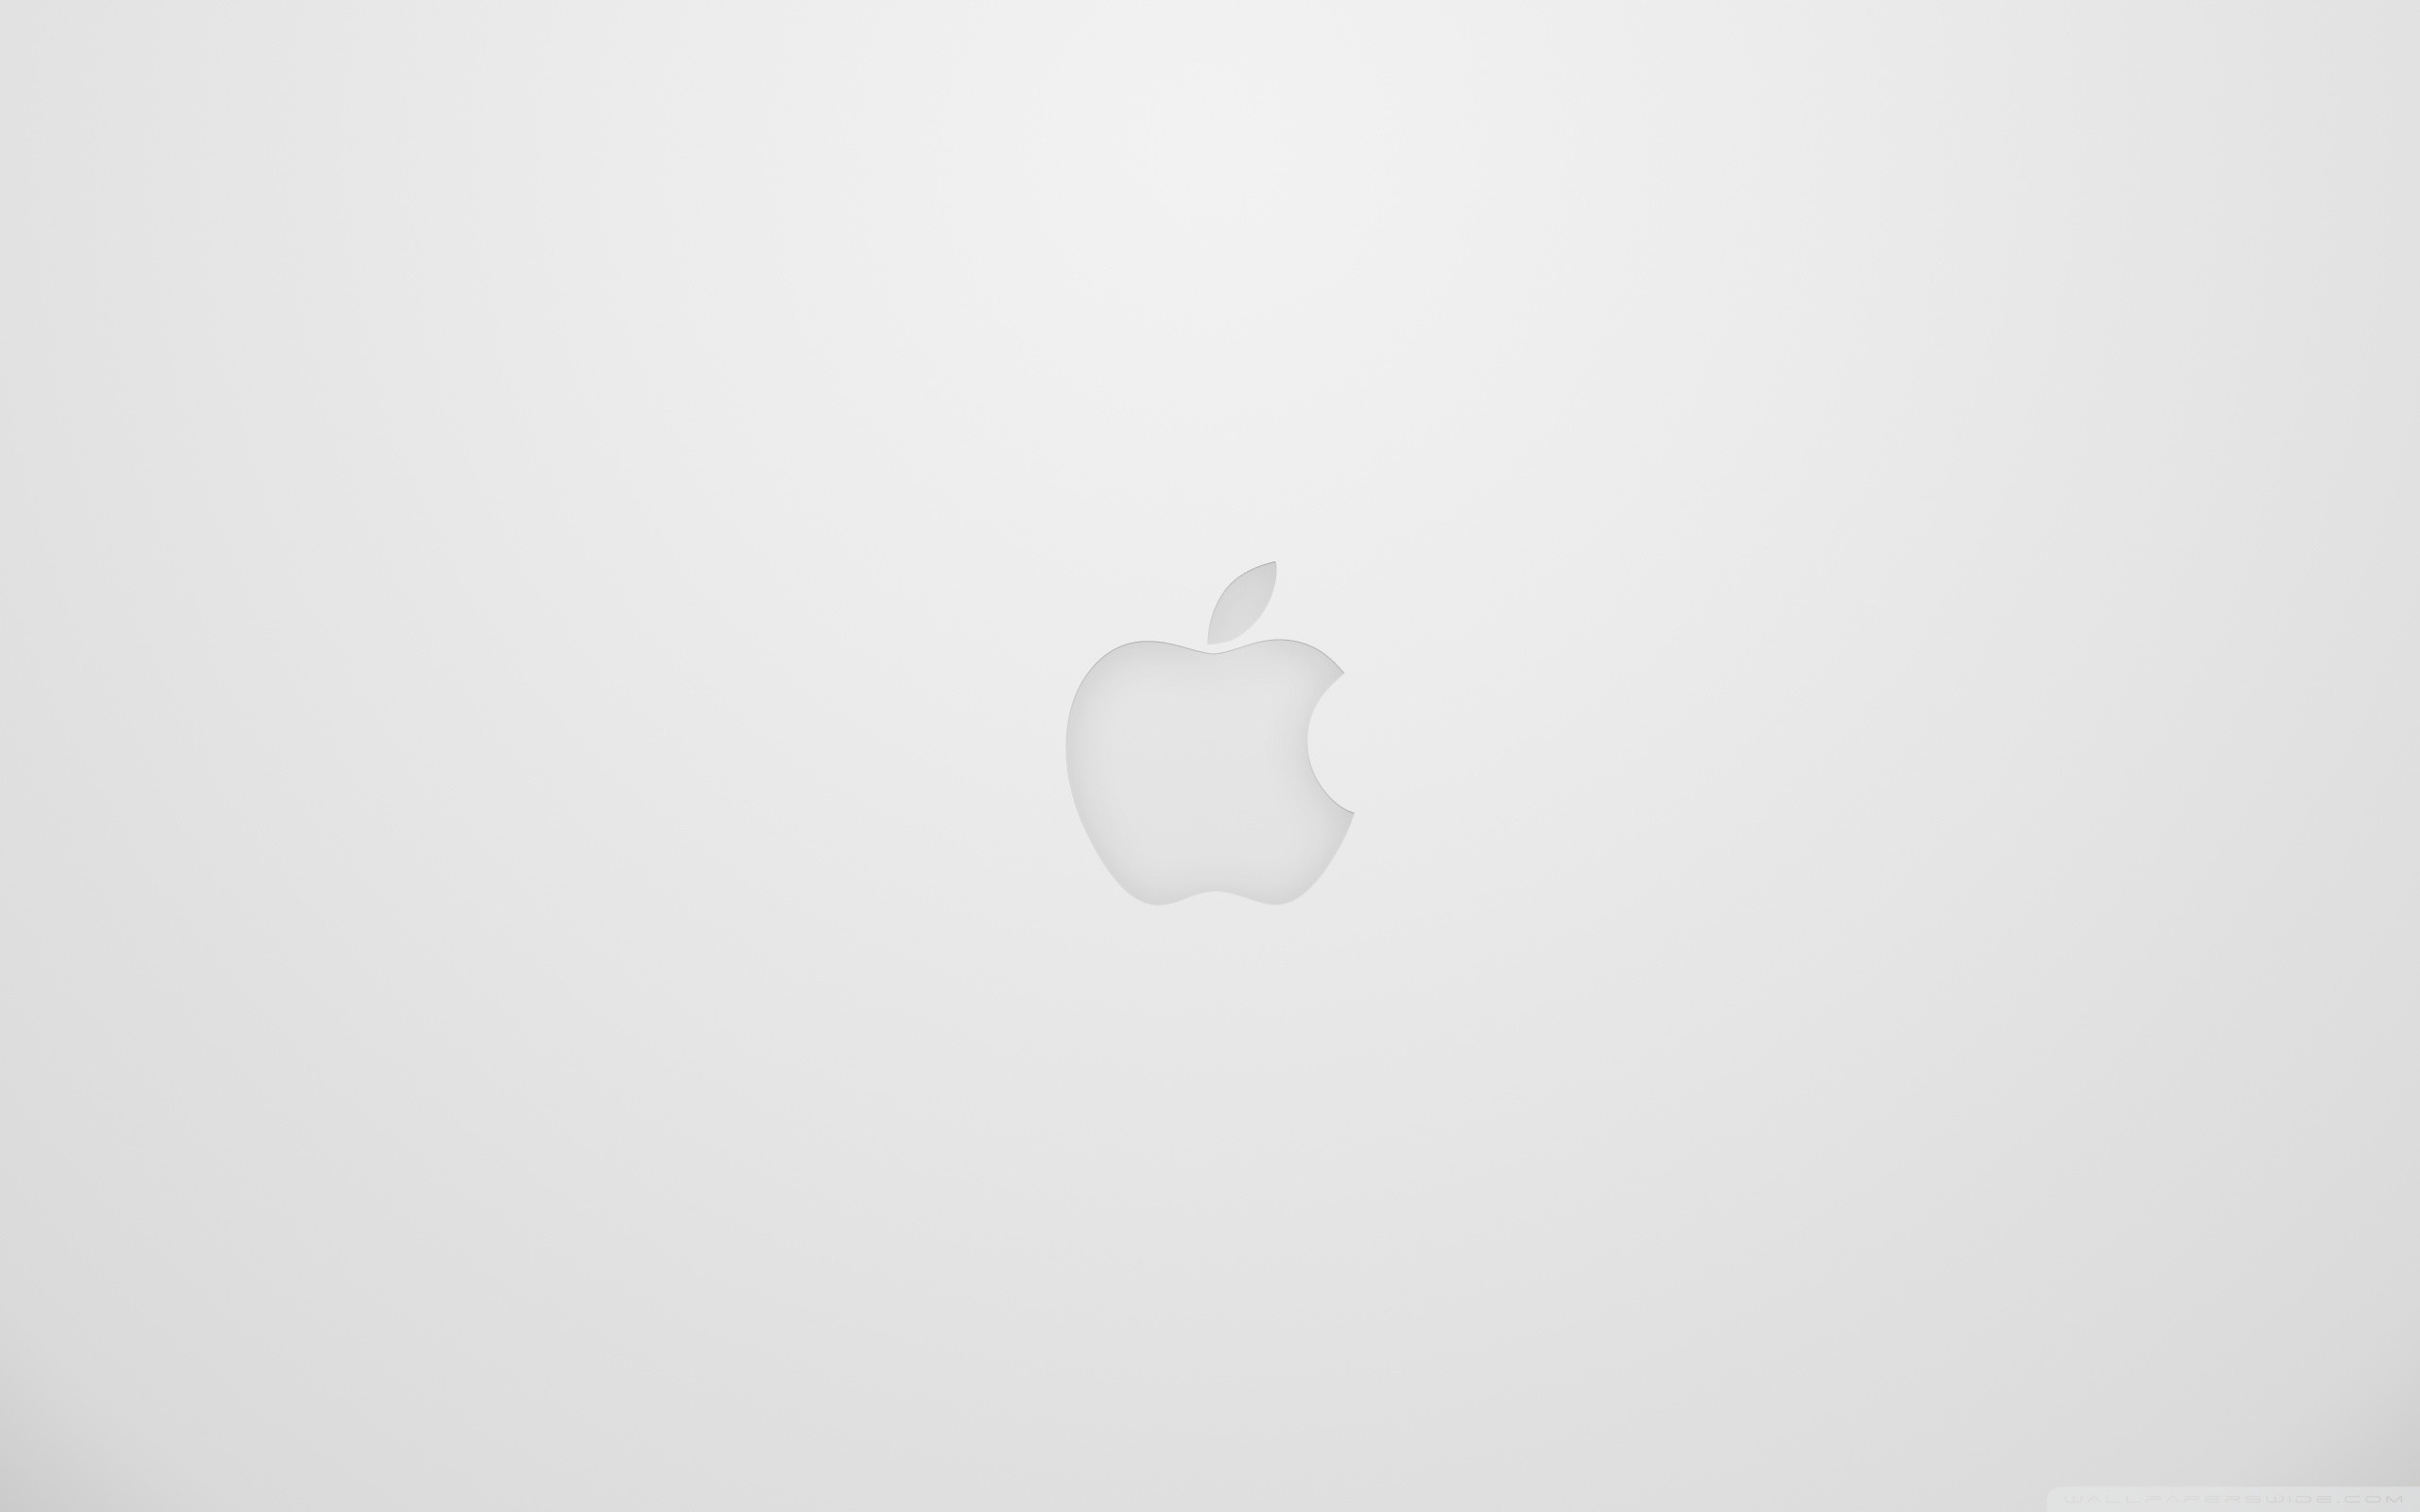 apple wallpaper (66+ pictures)